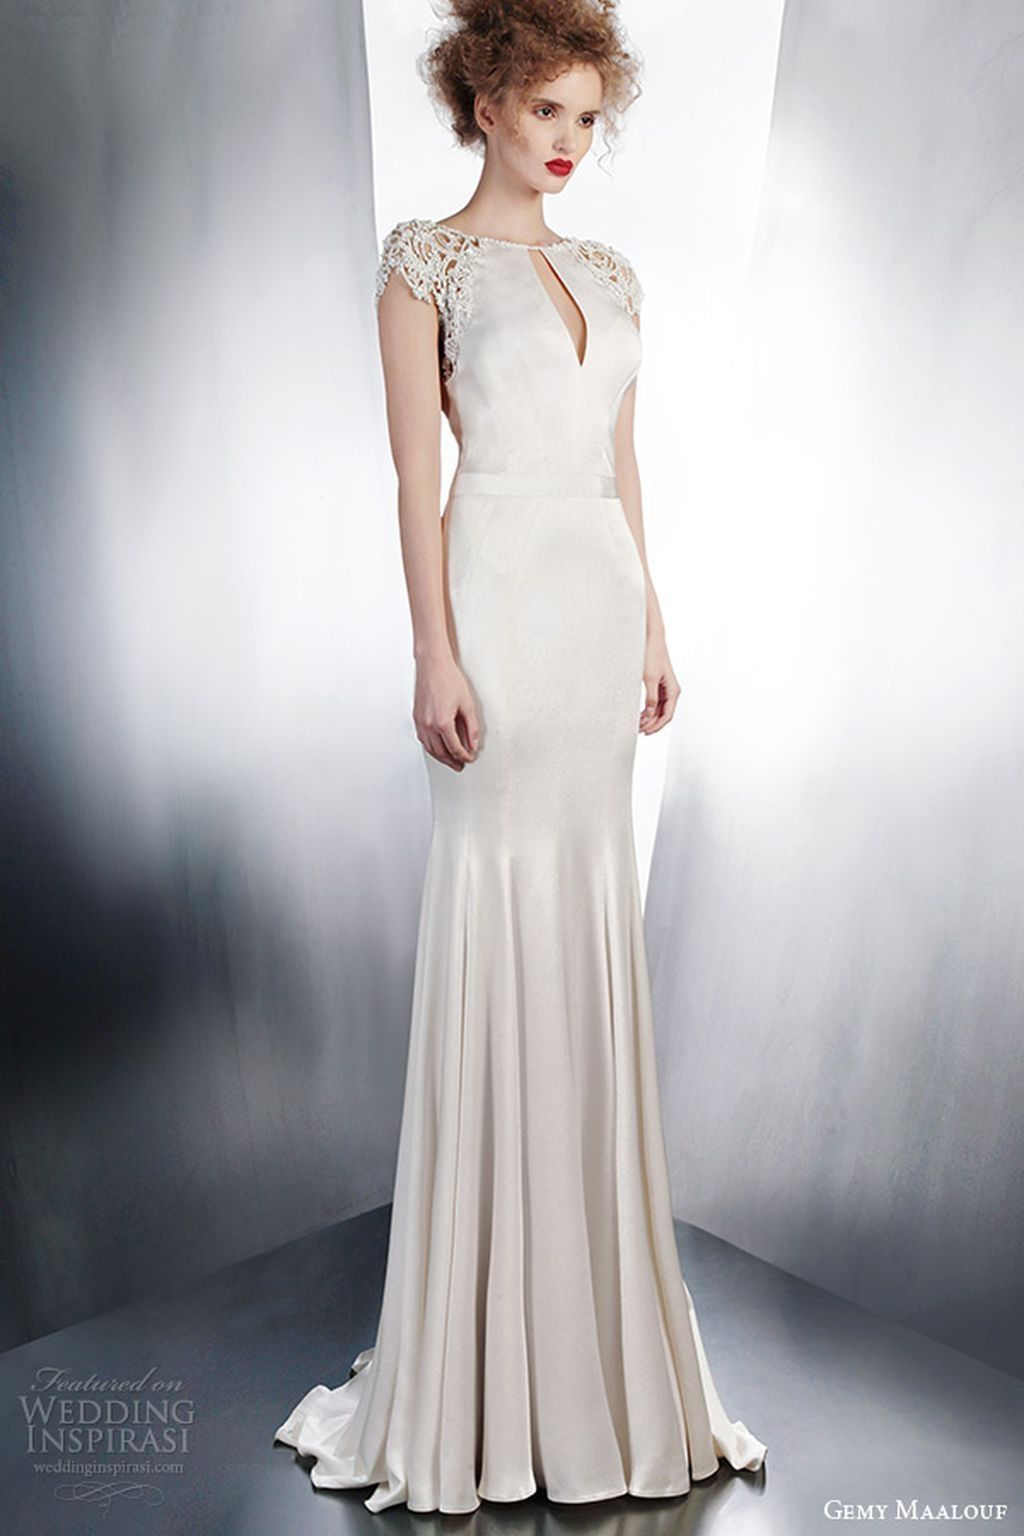 83 Simple but Romantic Non Traditional Wedding Dress Ideas ...